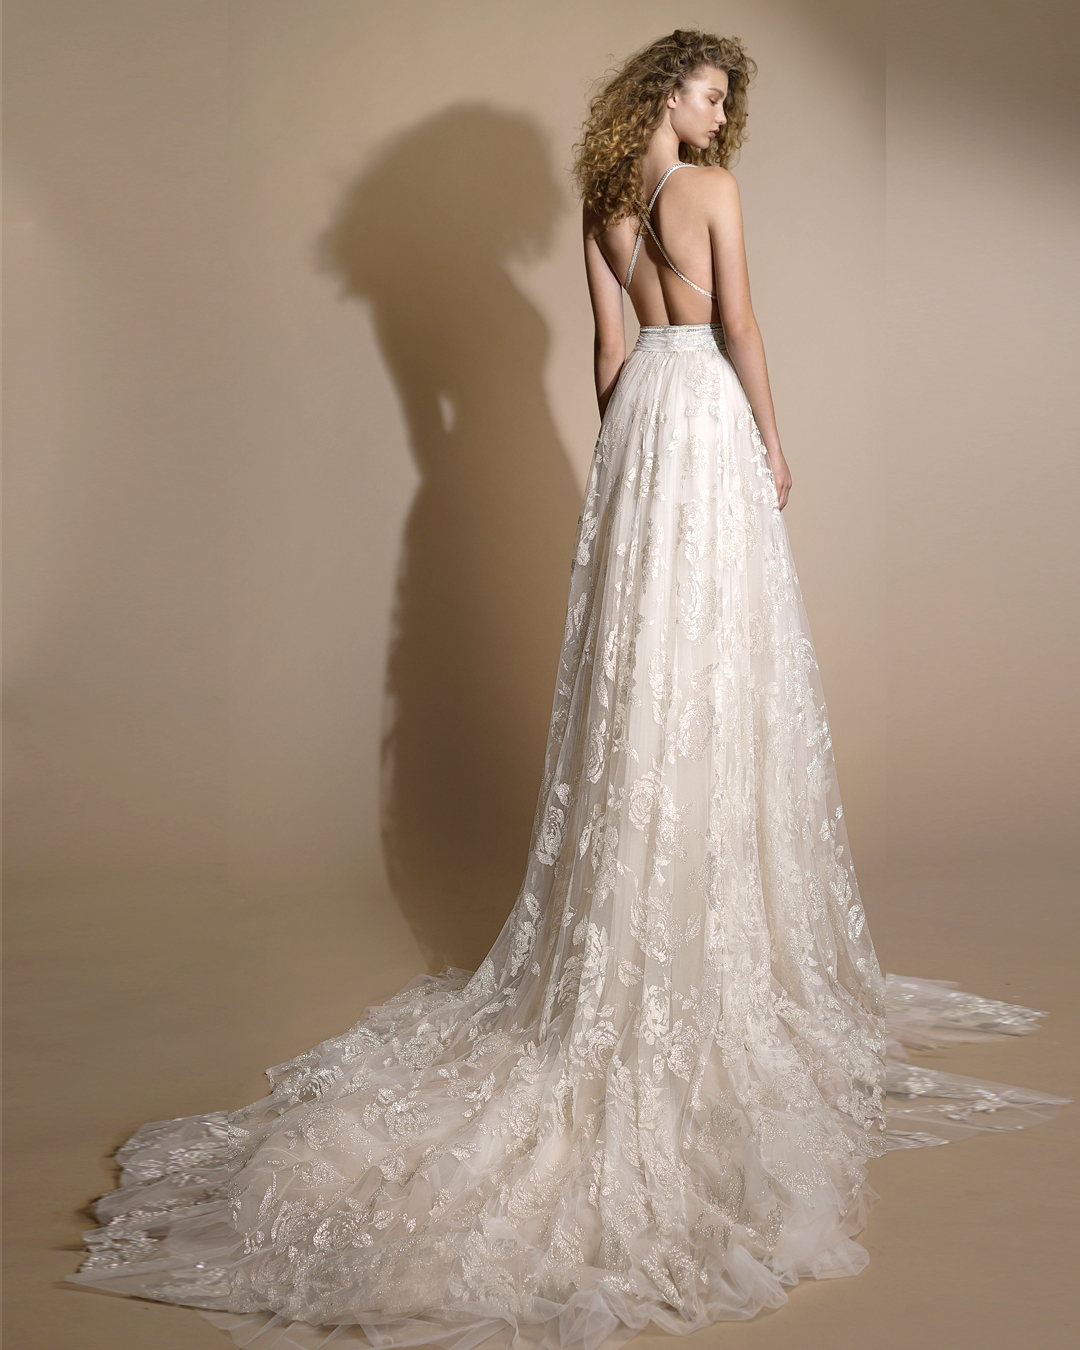 galia lahav gala wedding dress spring 2019 lace spaghetti strap a-line